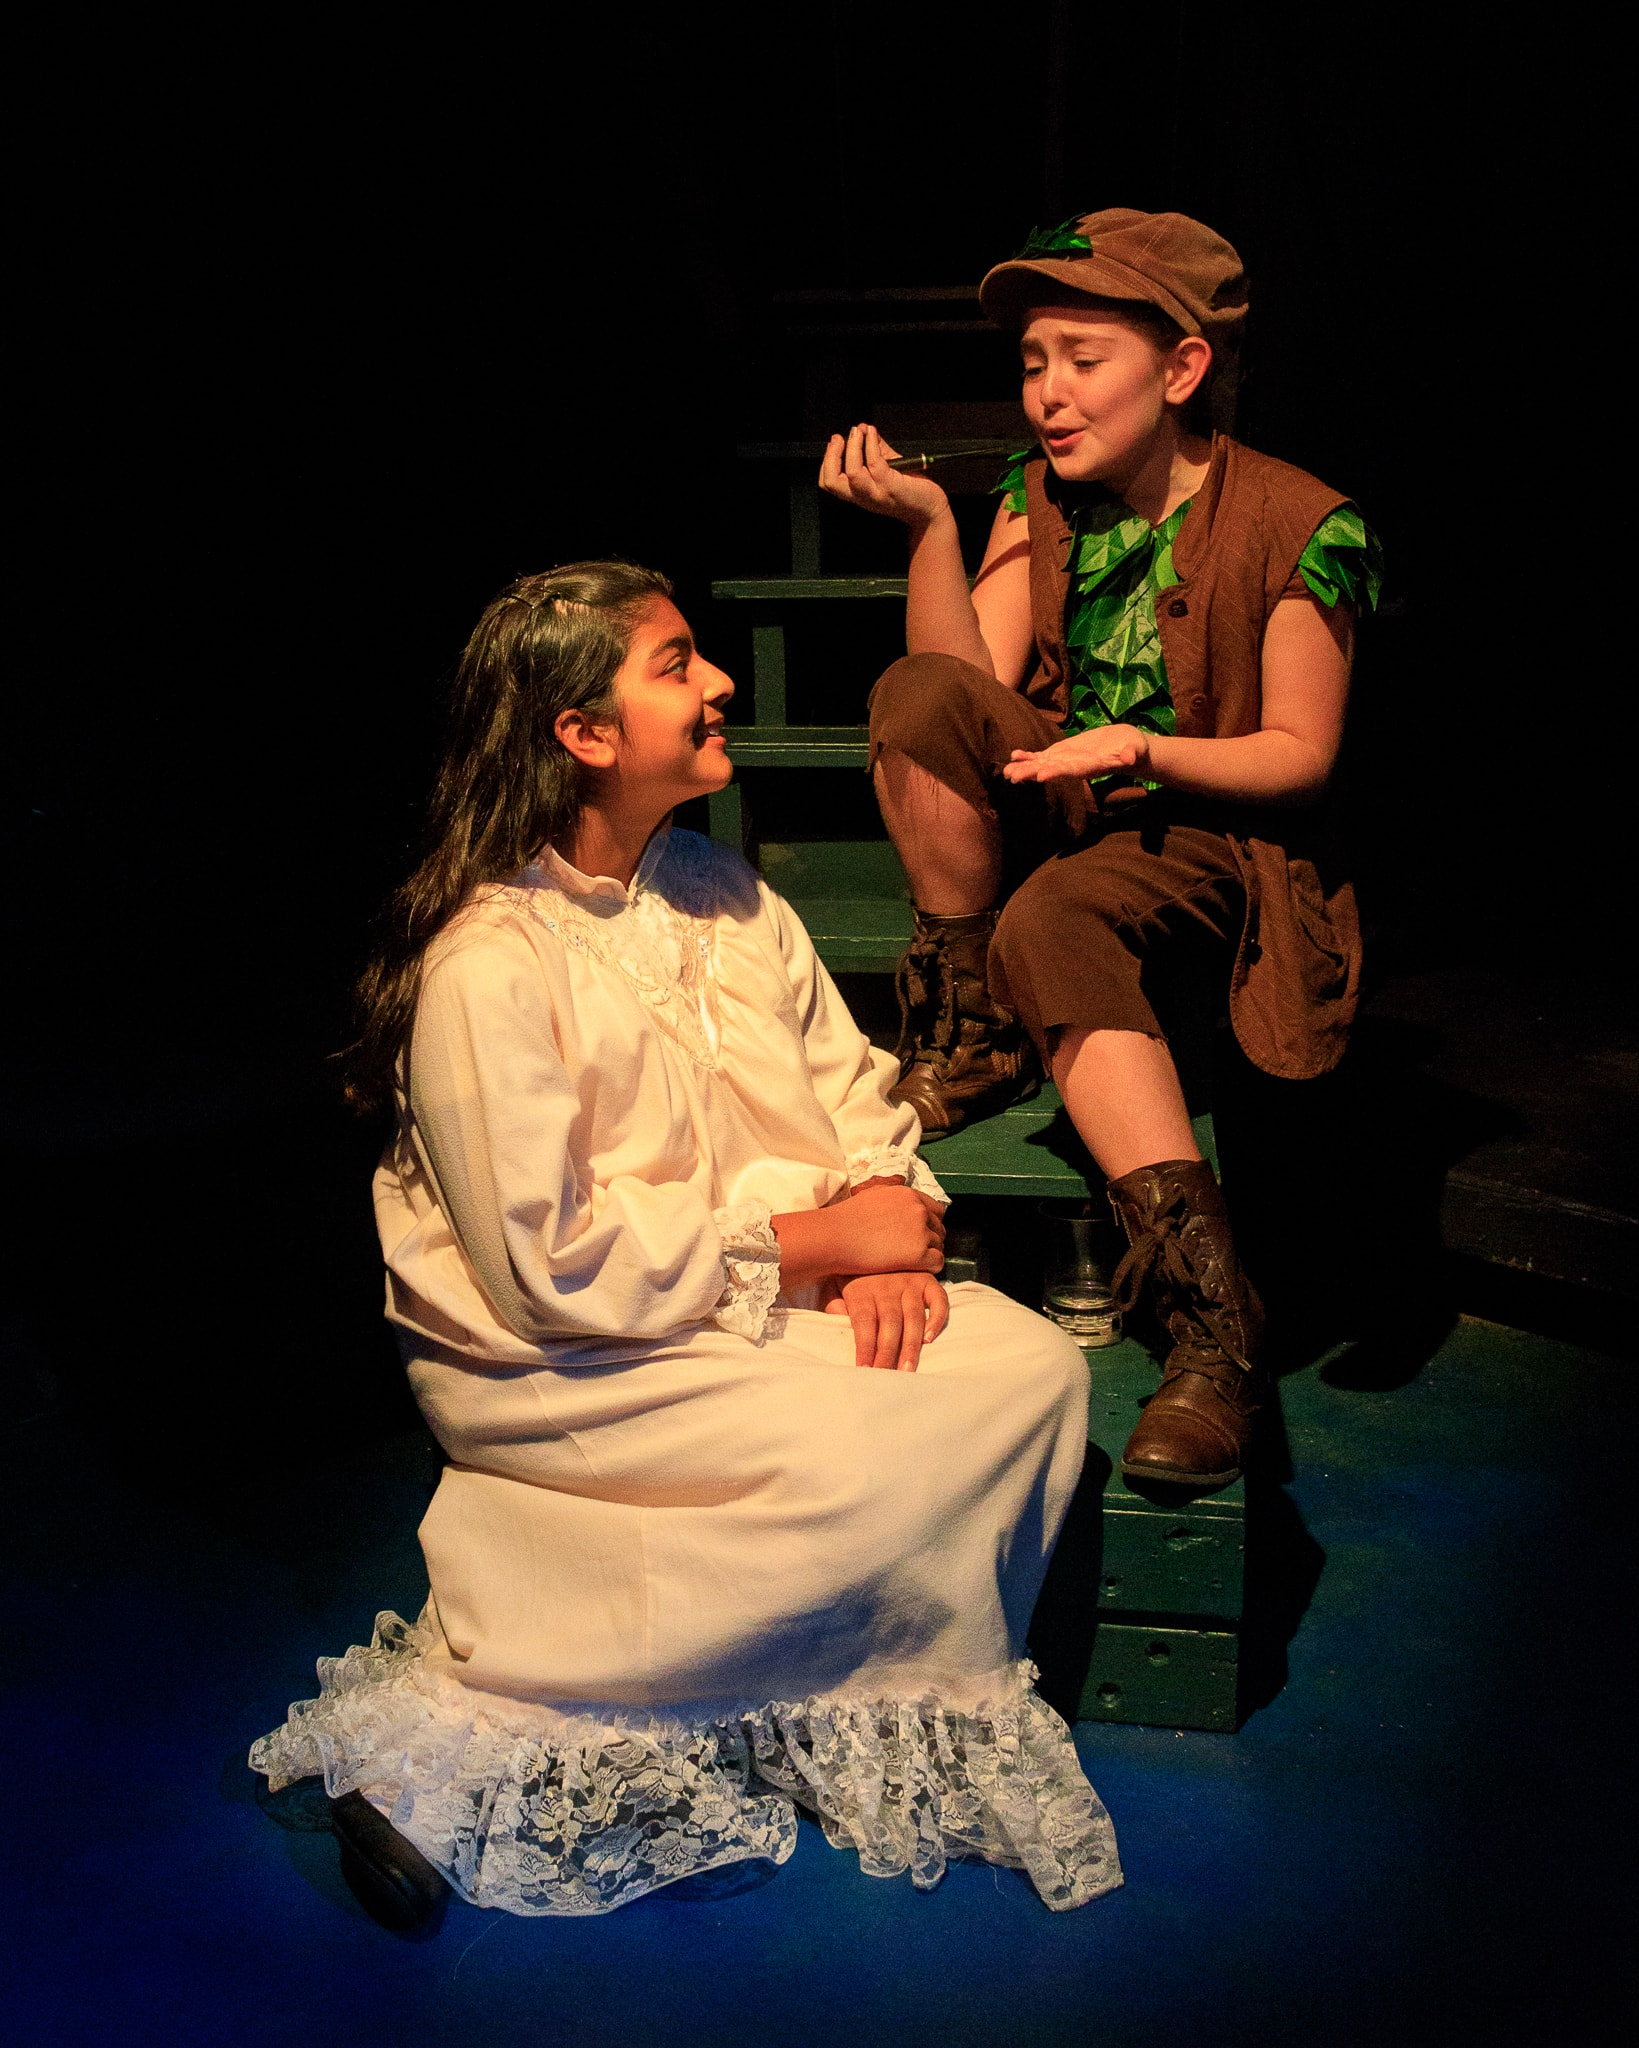 Aashna Kapur as Wendy and Gabriela Simmons Robles as Peter Pan. Photo Credit: Keith Waters/Kx Photography.